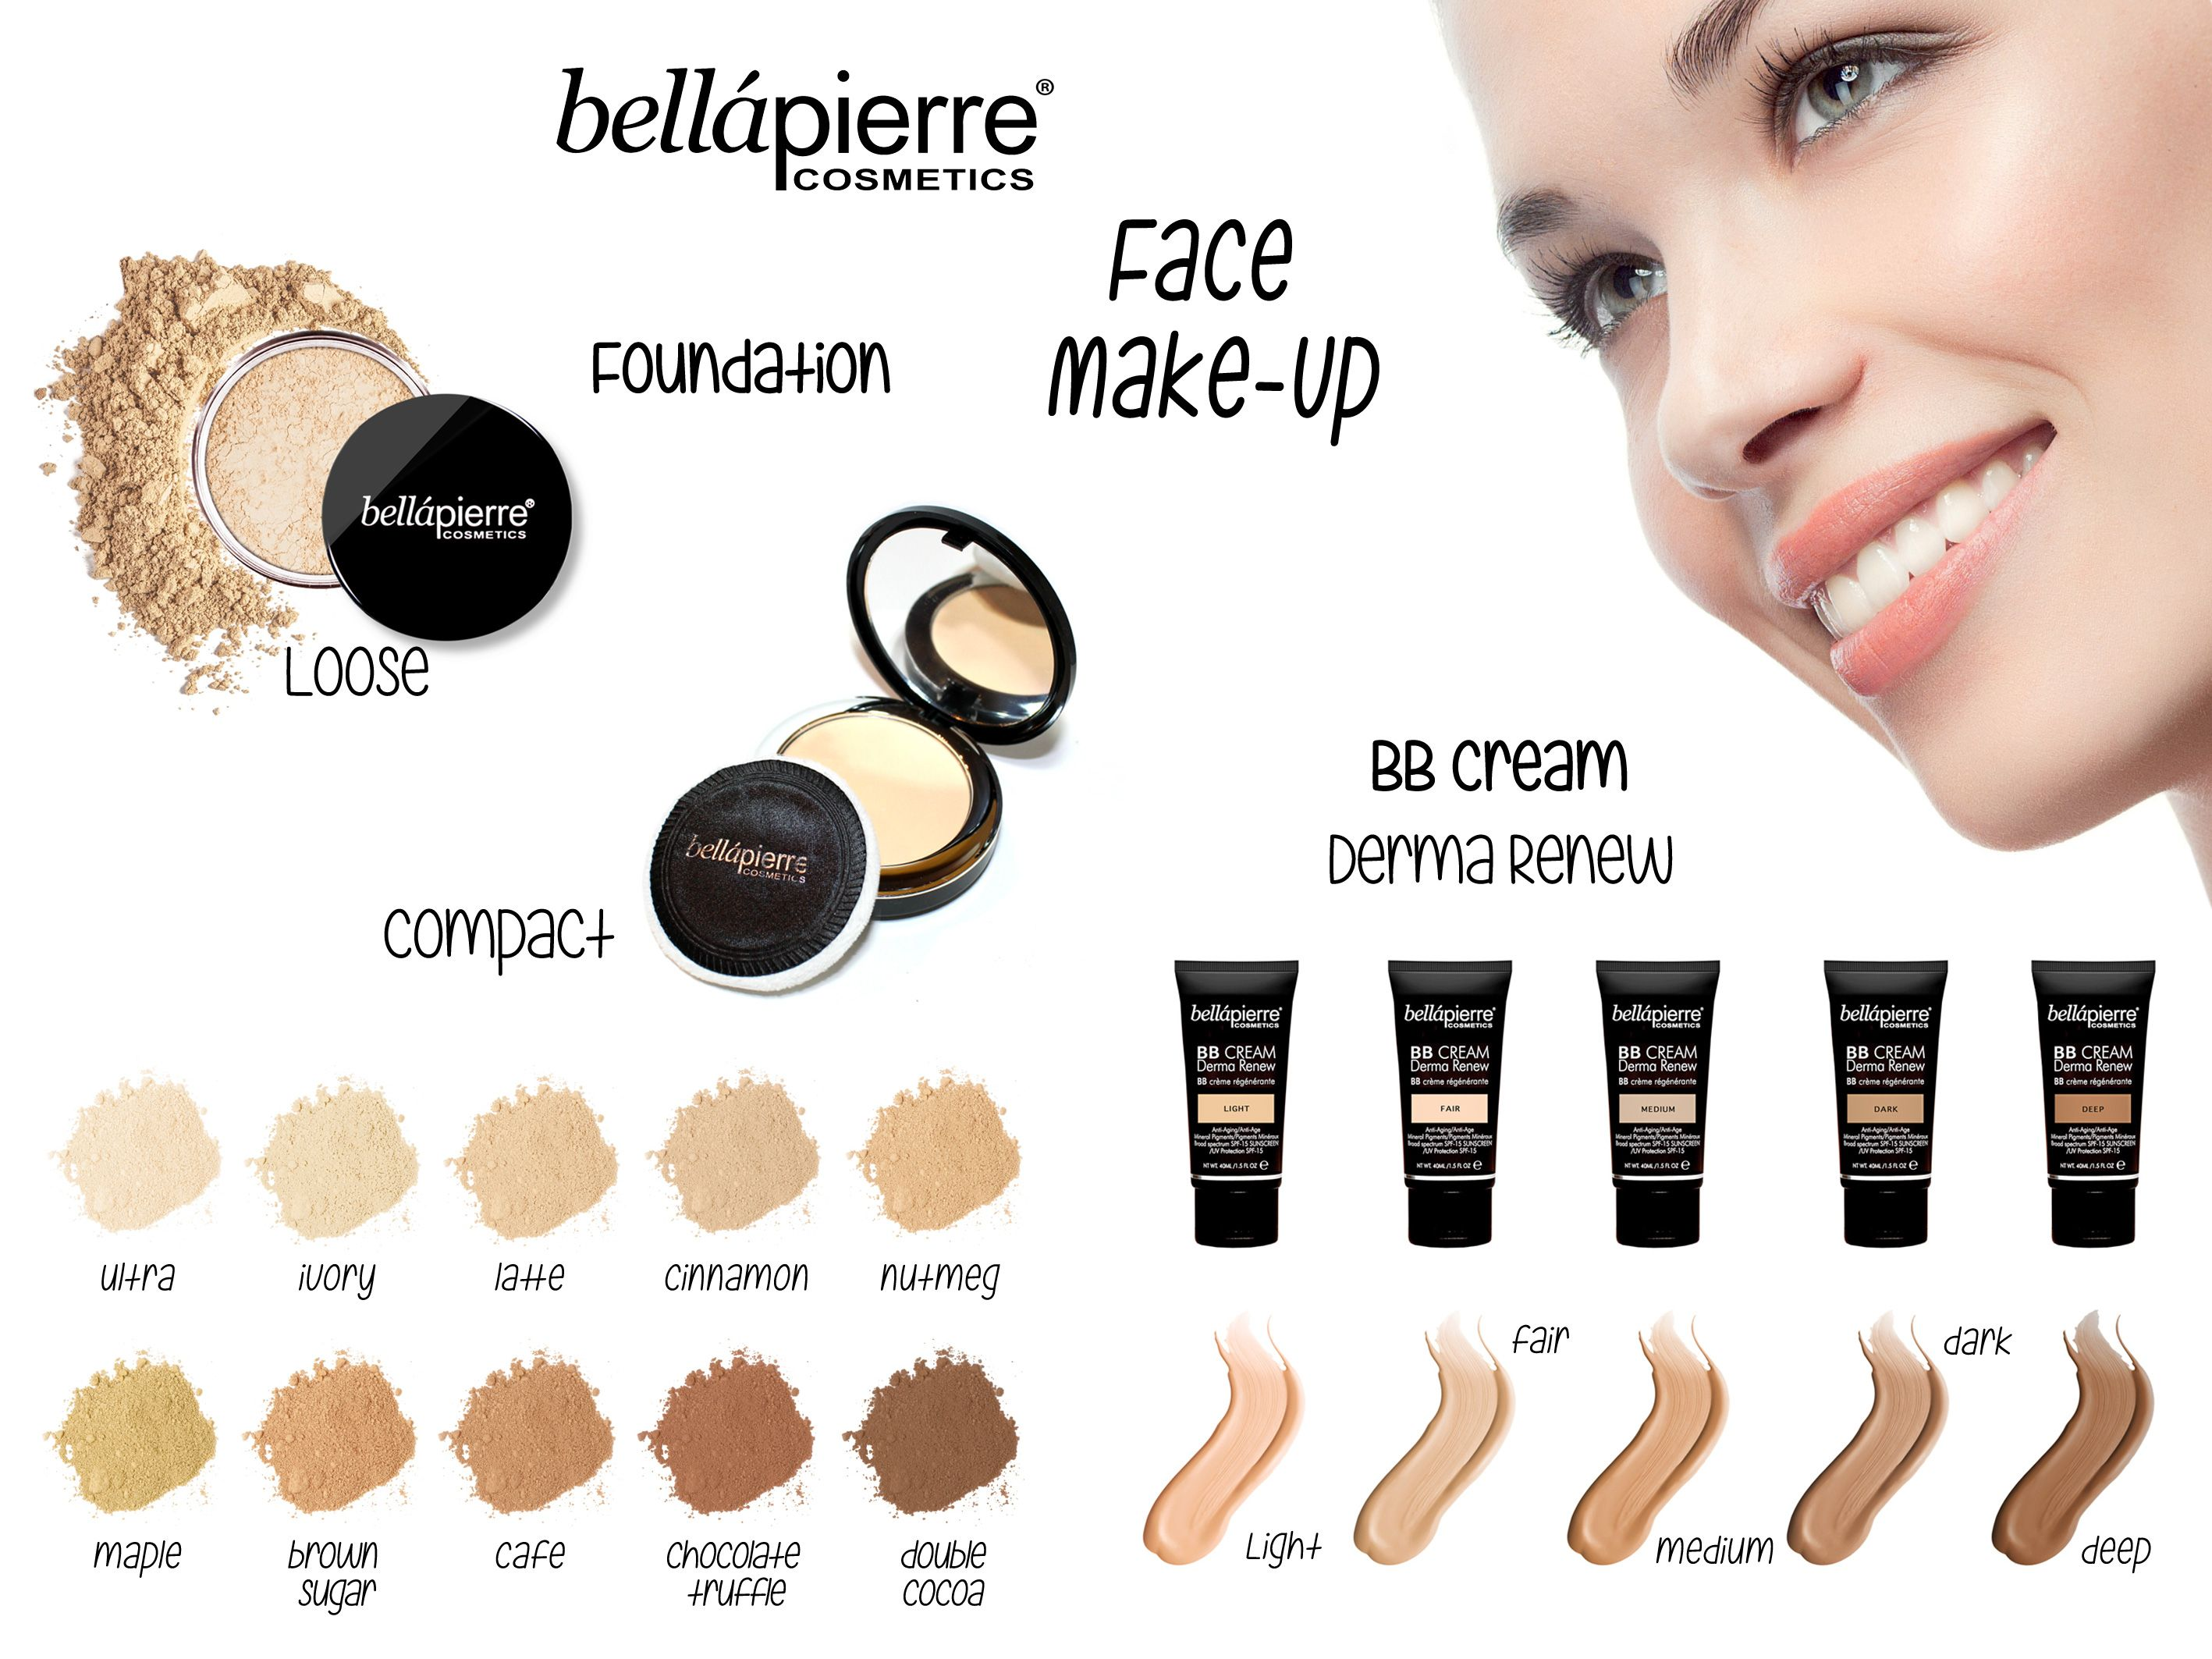 bellapierre #cosmetics #makeup viso ... #mineral #foundation, in ...